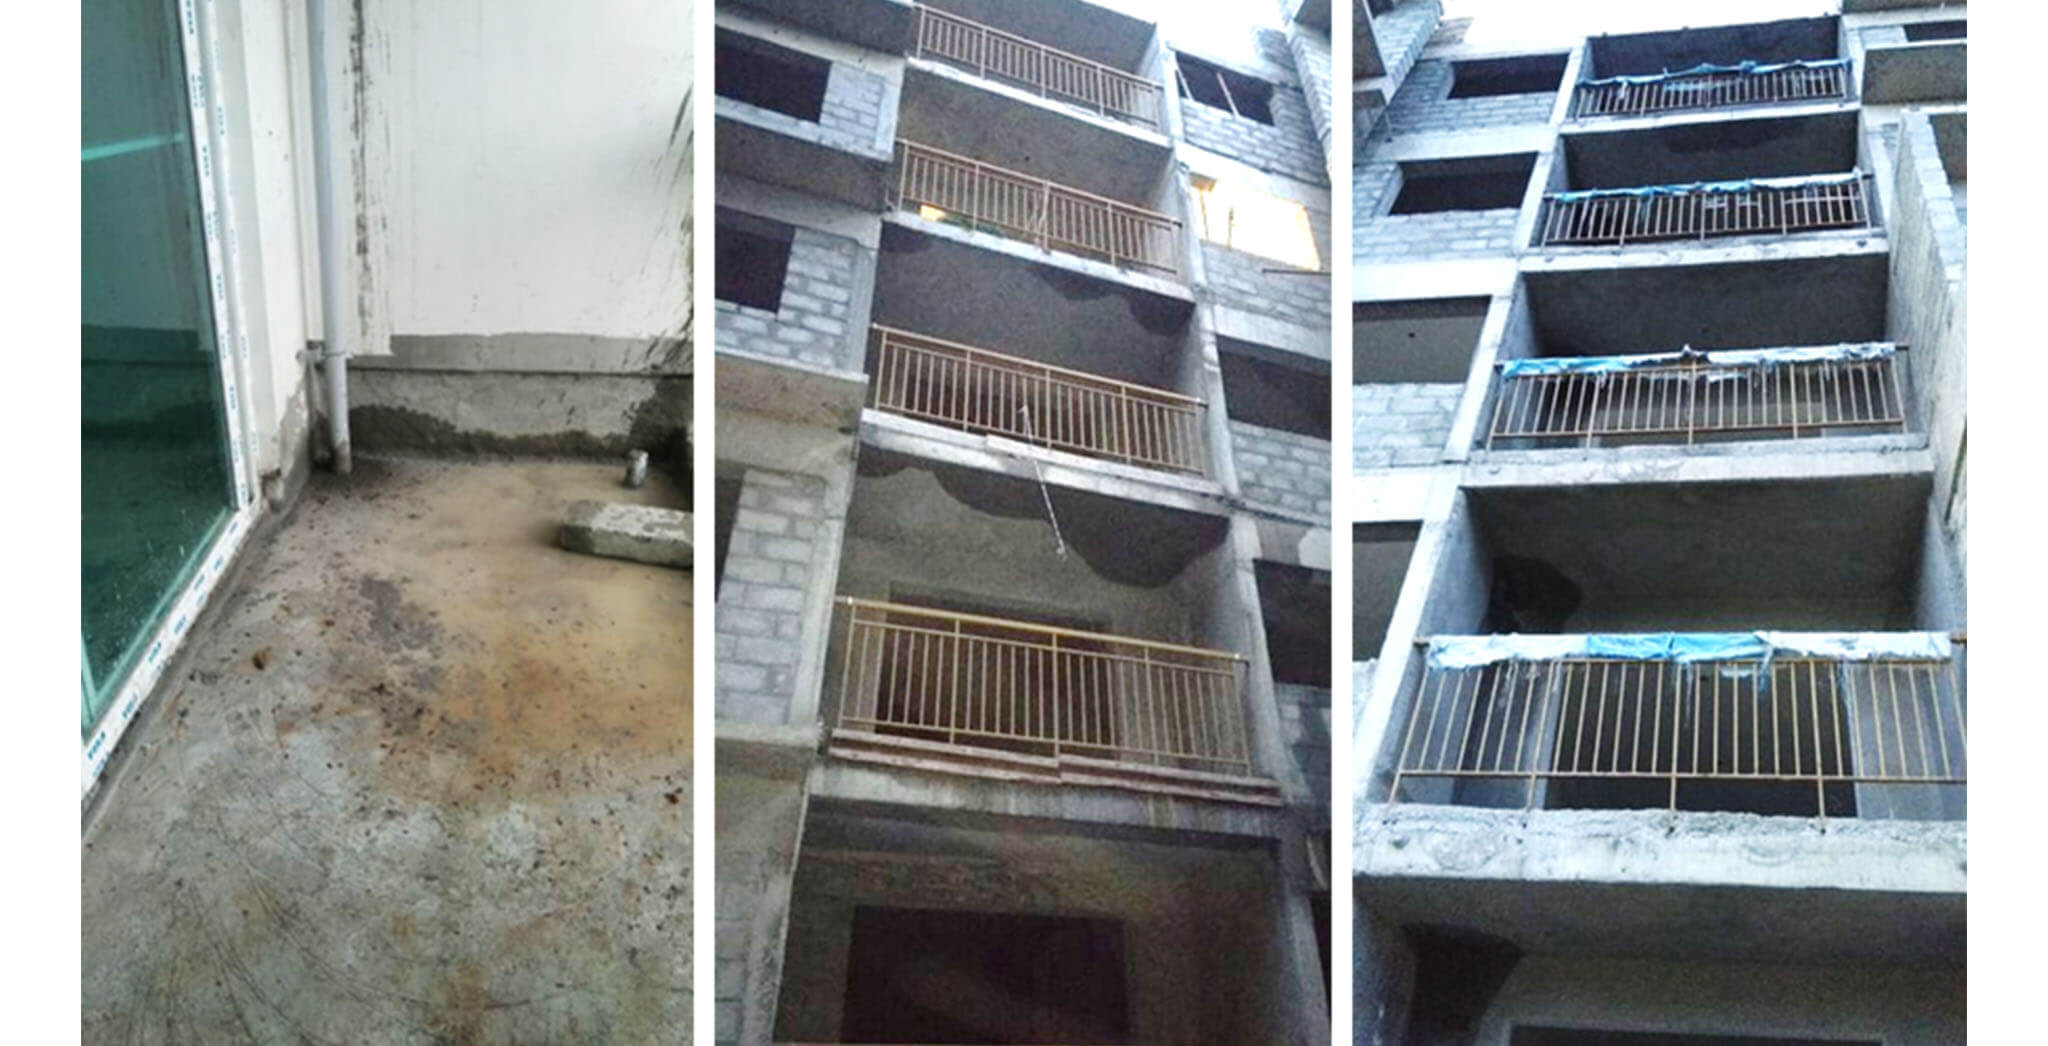 Aug 2020 - L Block: Up to 4th floor balcony railing and water proofing works completed.